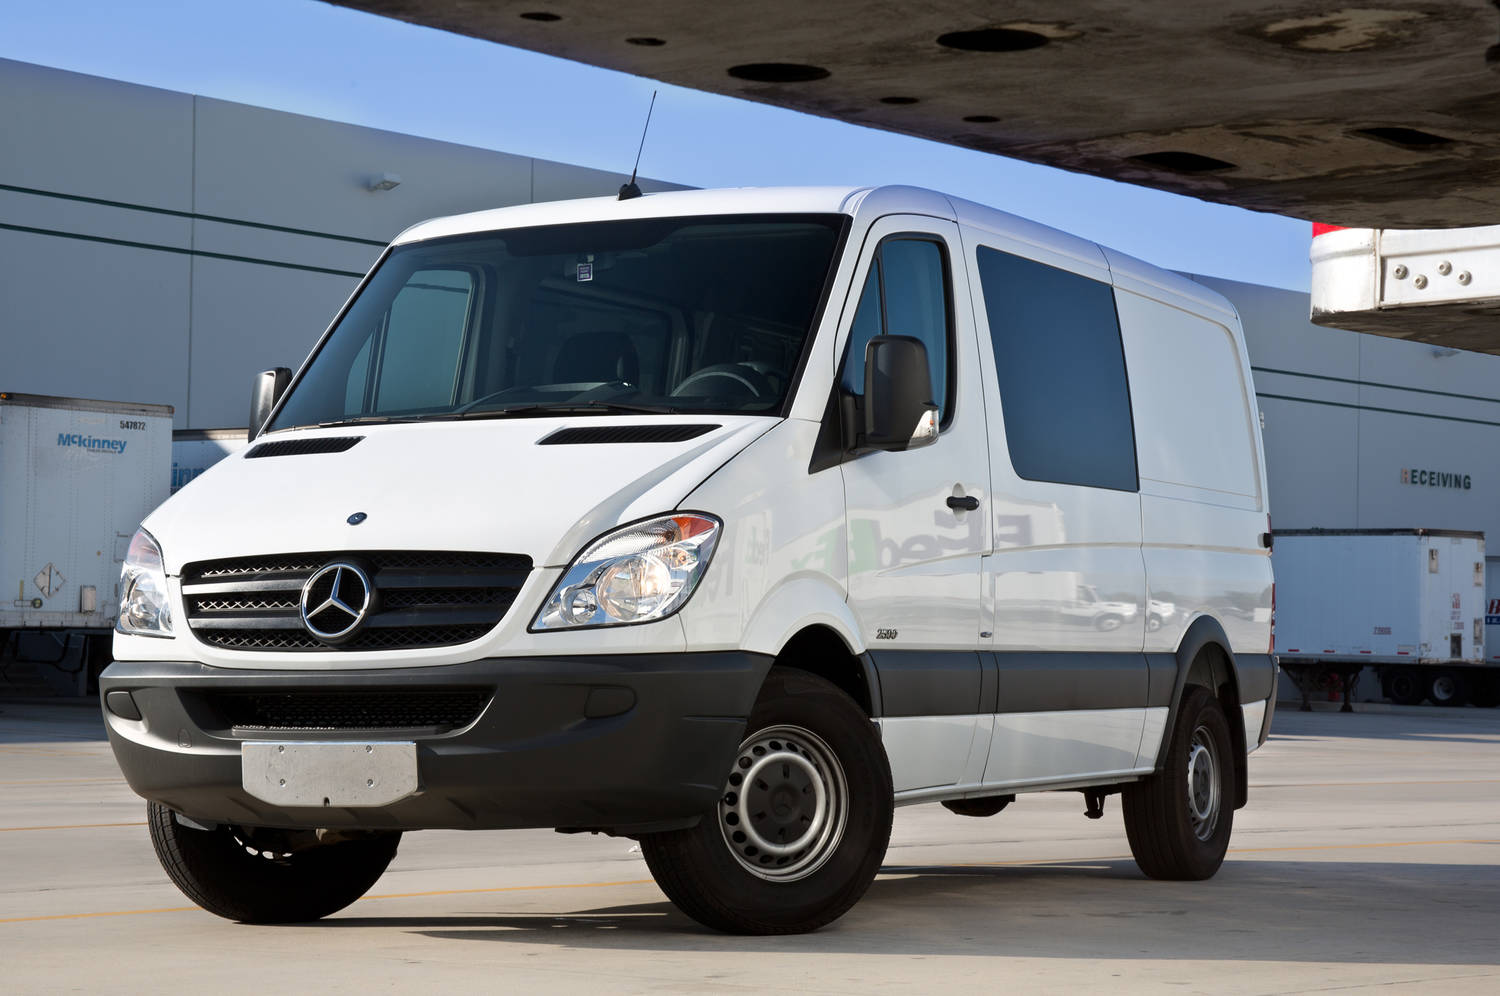 Mercedes Benz Sprinter, 901-906, 1995-2006